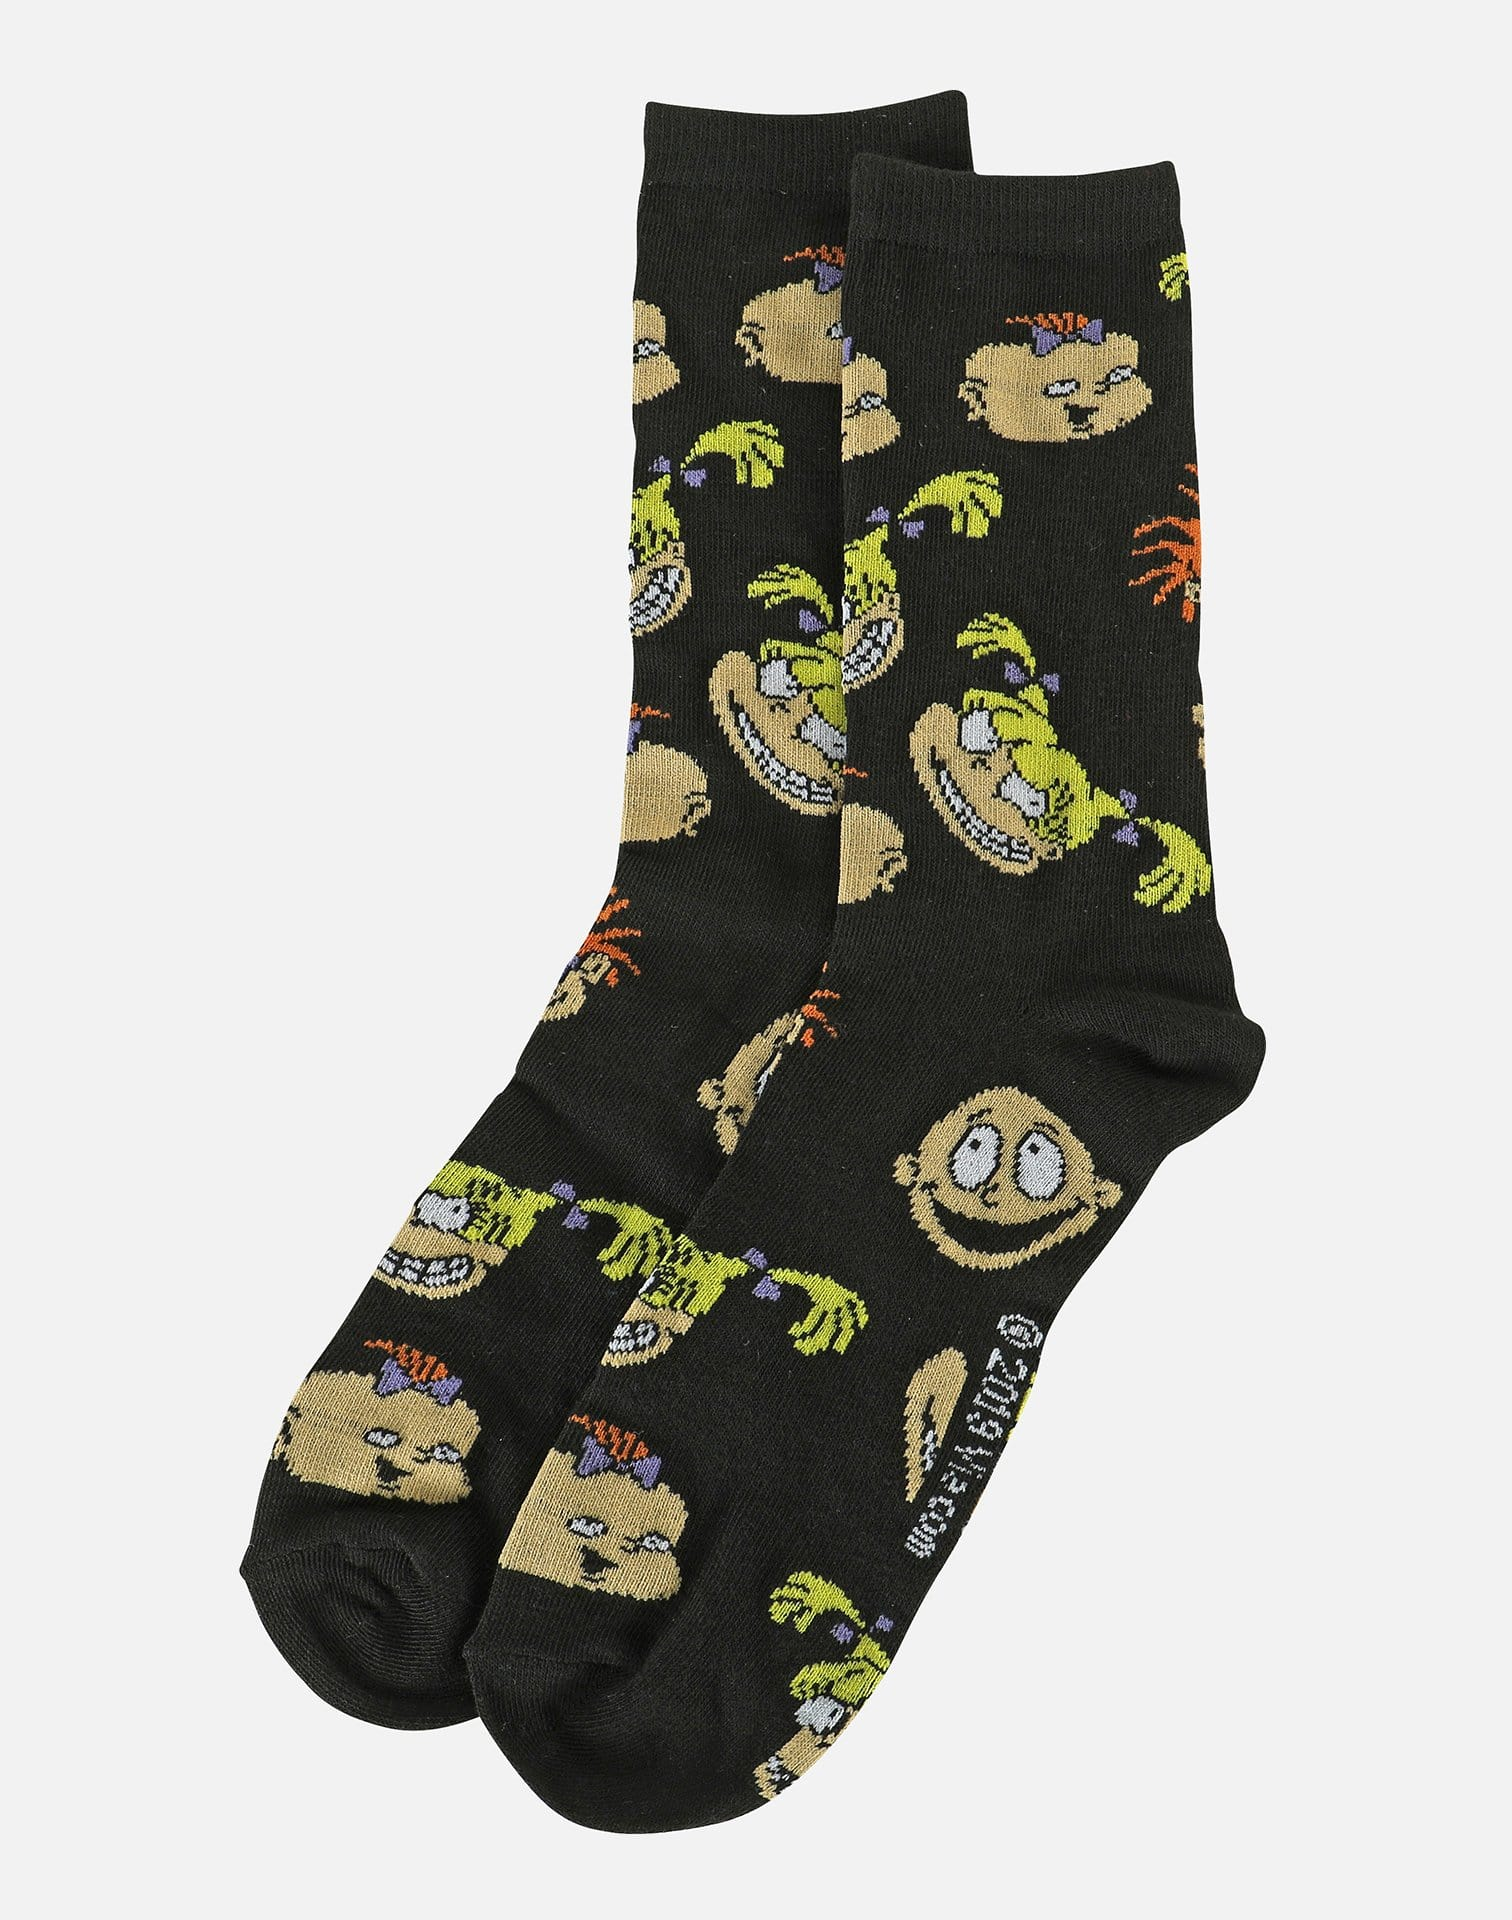 Hypnotic Hats Ltd Men's Rugrats 2-Pair Pack Socks